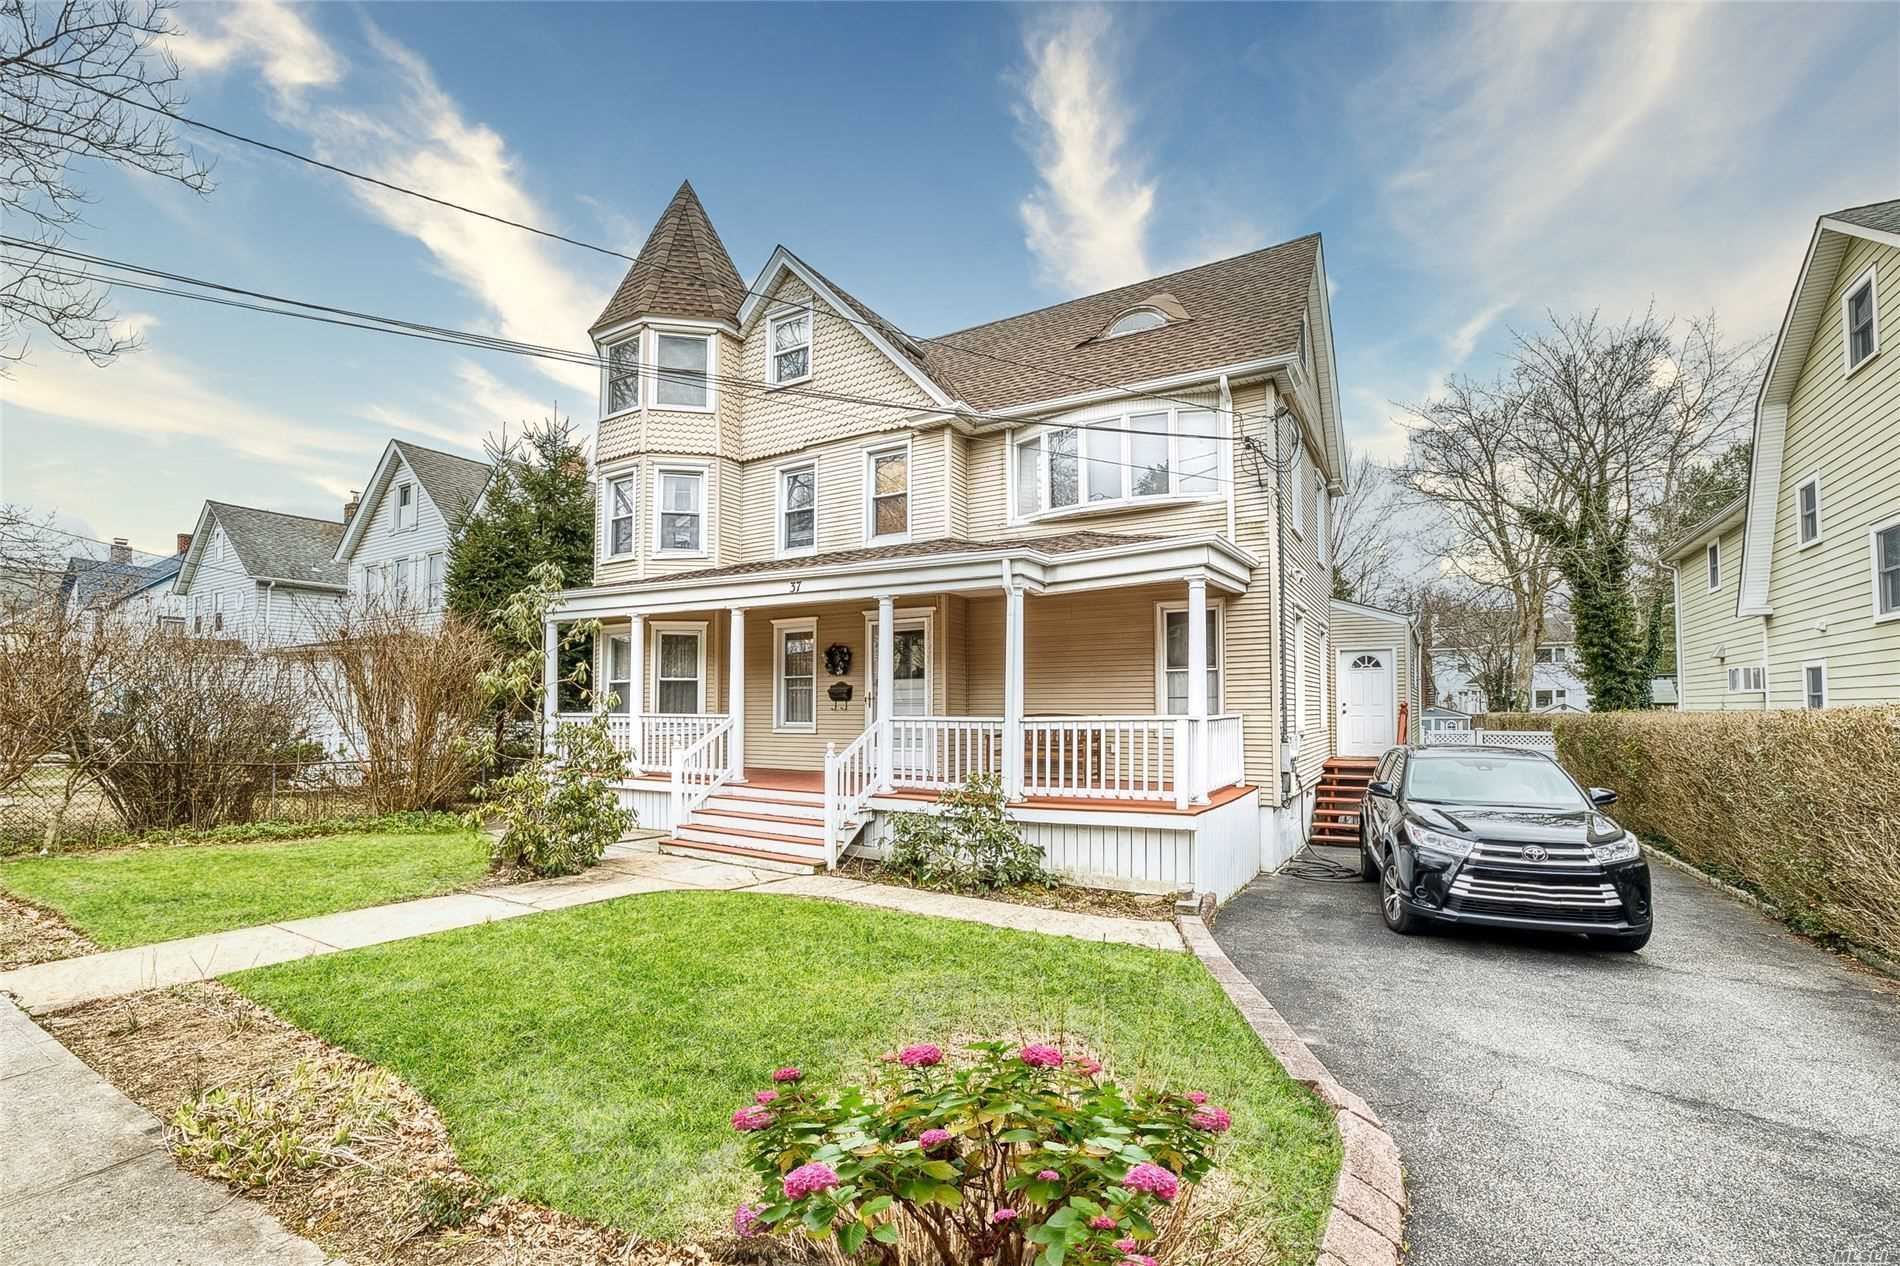 37 Tooker Avenue, Oyster Bay, NY 11771 - MLS#: 3206890